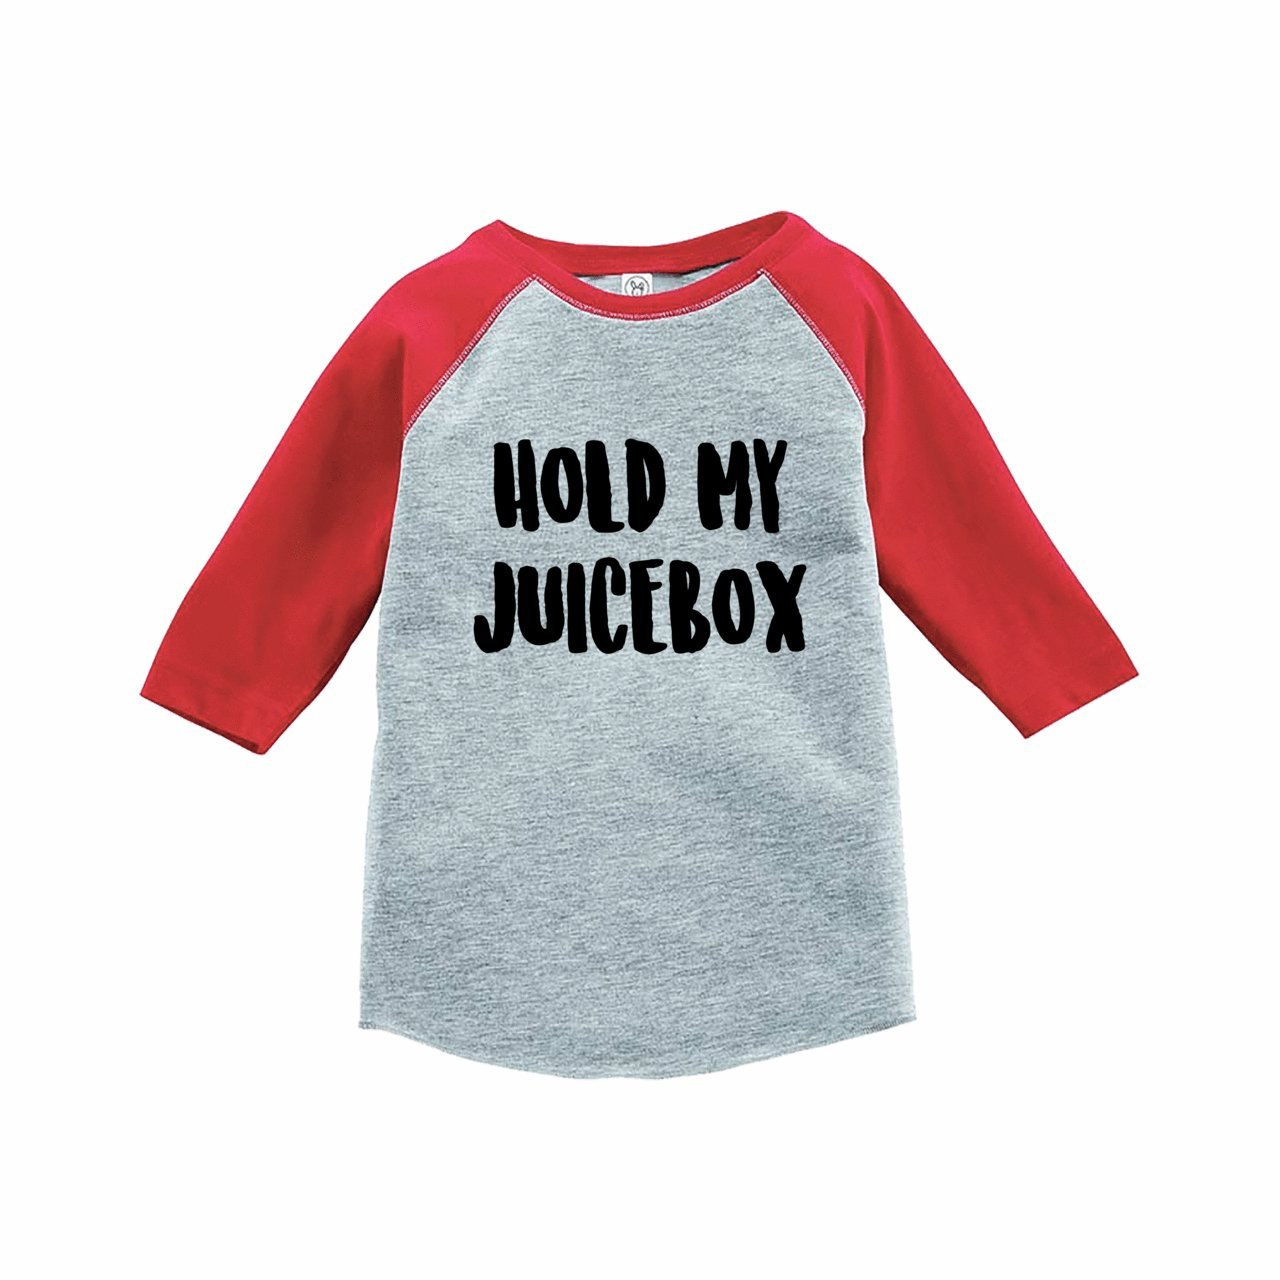 7 ate 9 Apparel Funny Kids Hold My Juicebox Baseball Tee Red